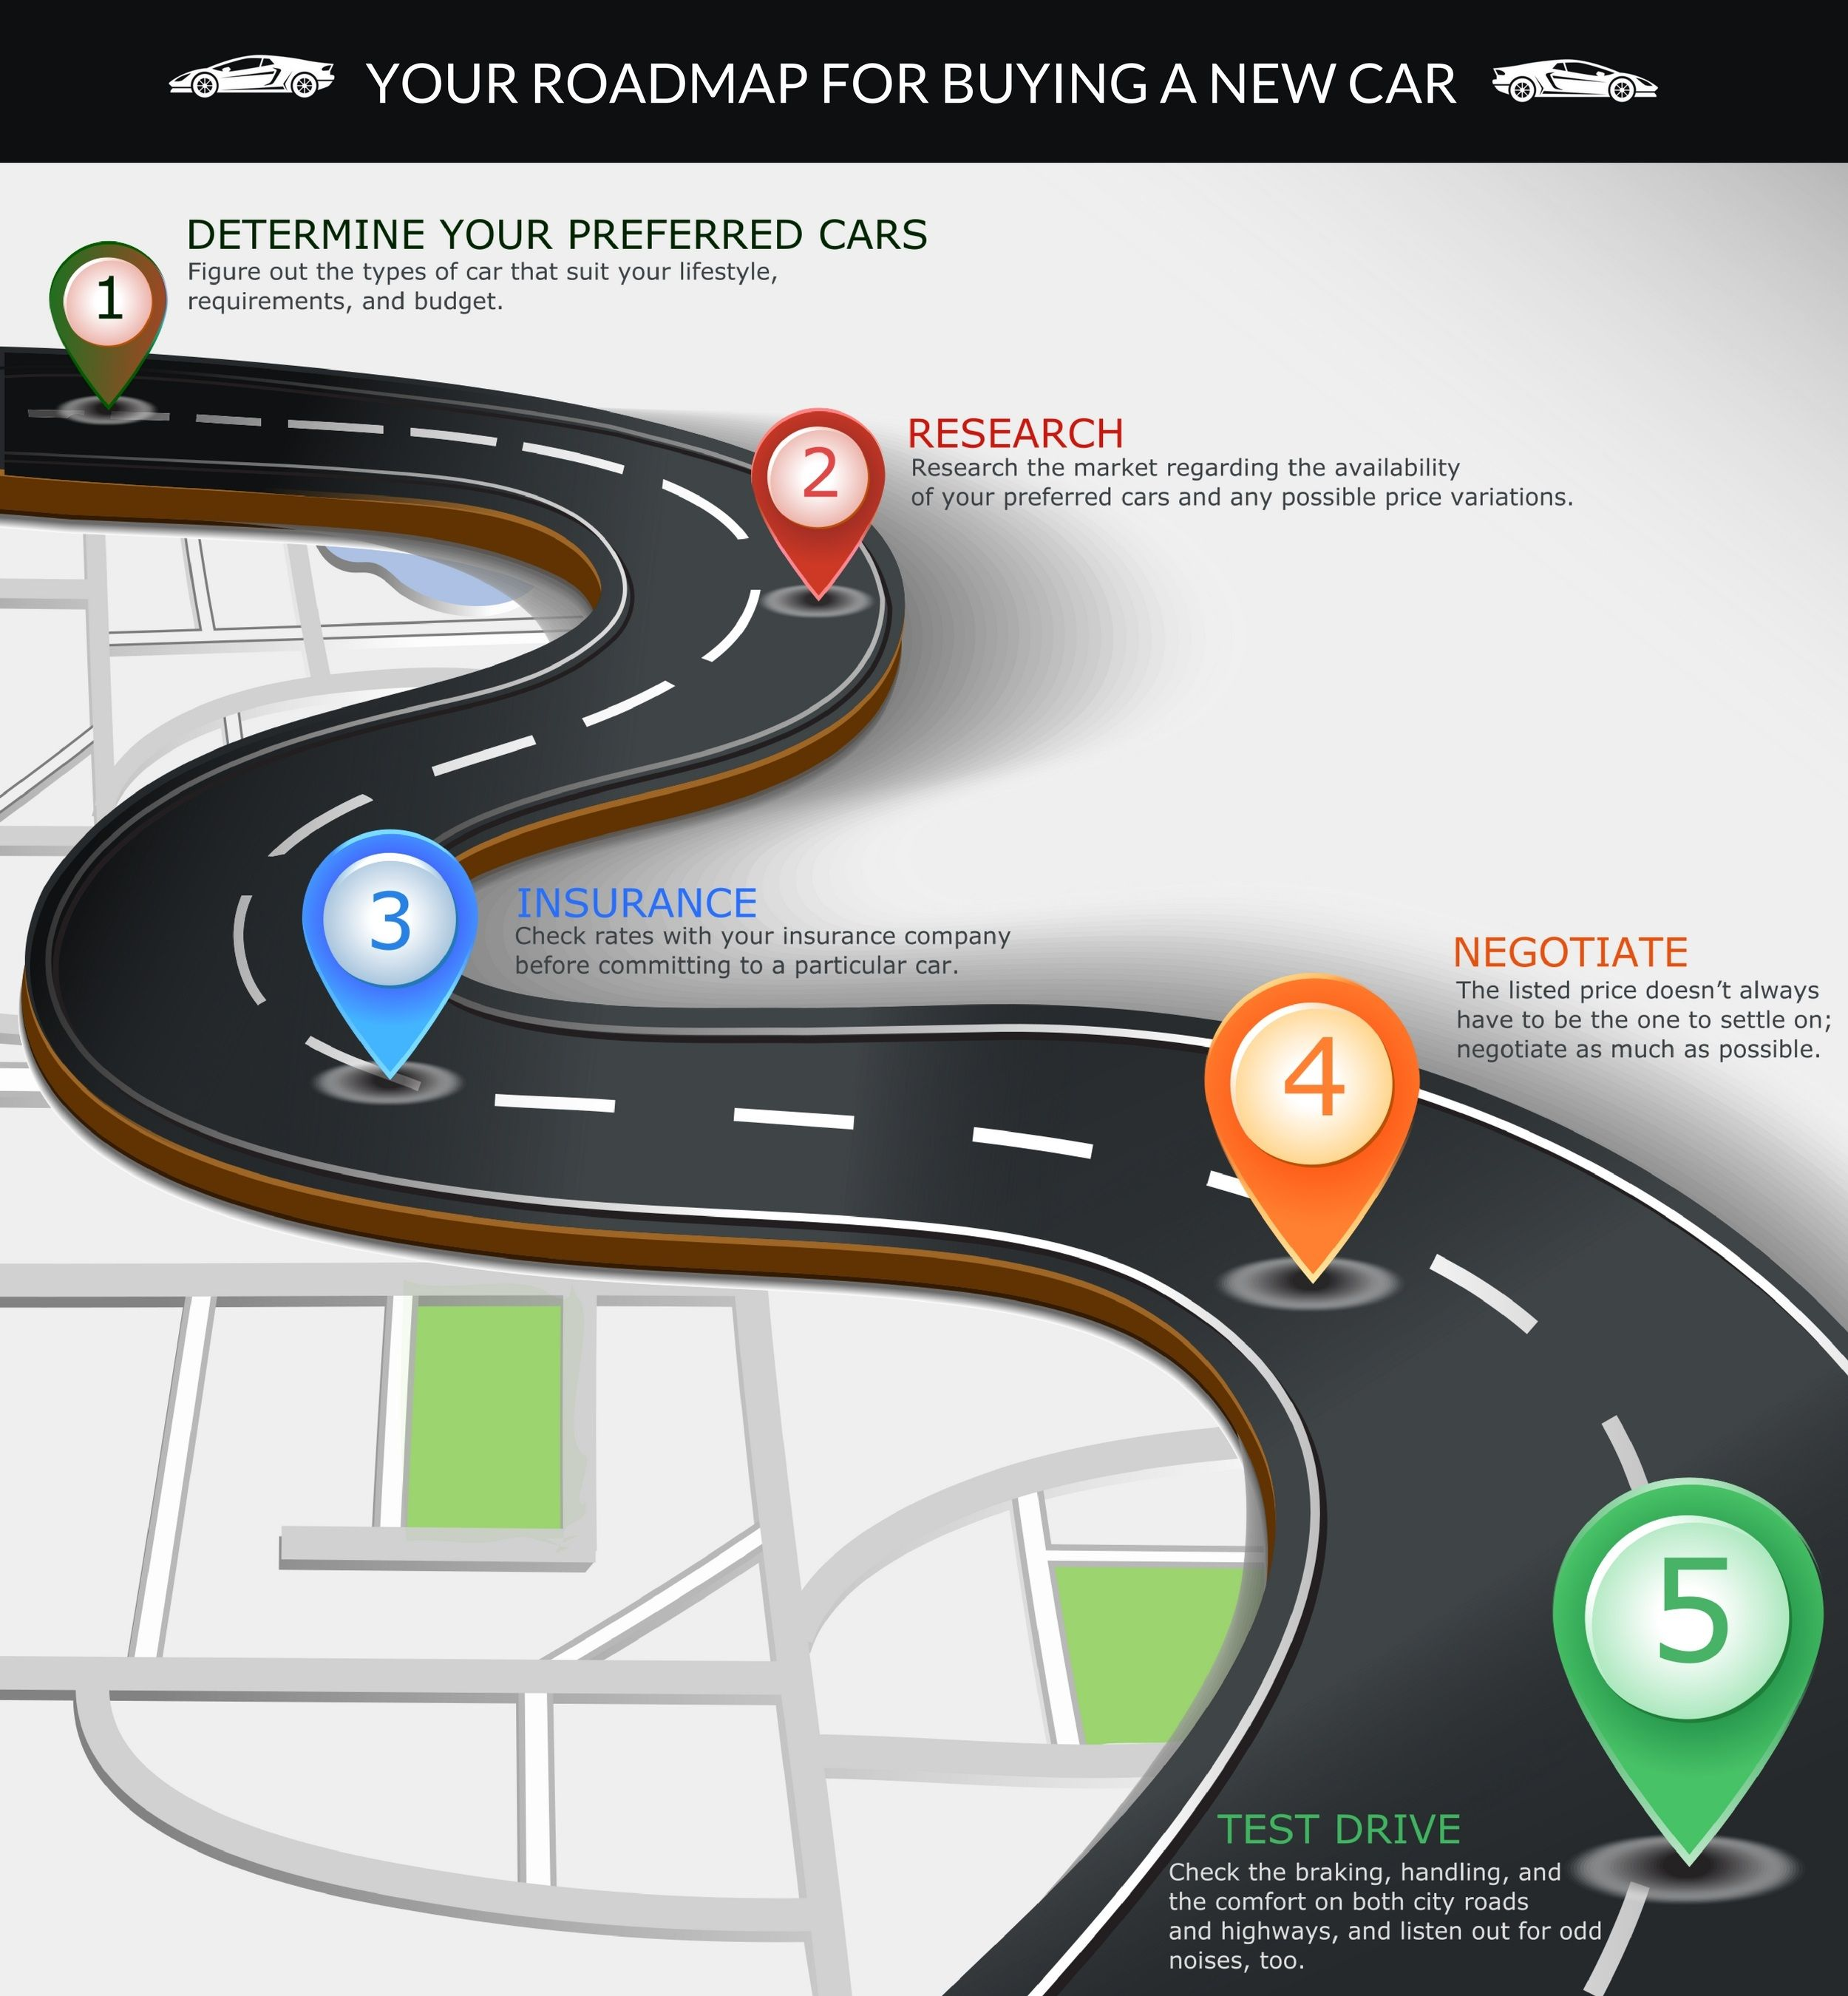 Are You Planning To Buy A Car Check Out The Road Map For Buying